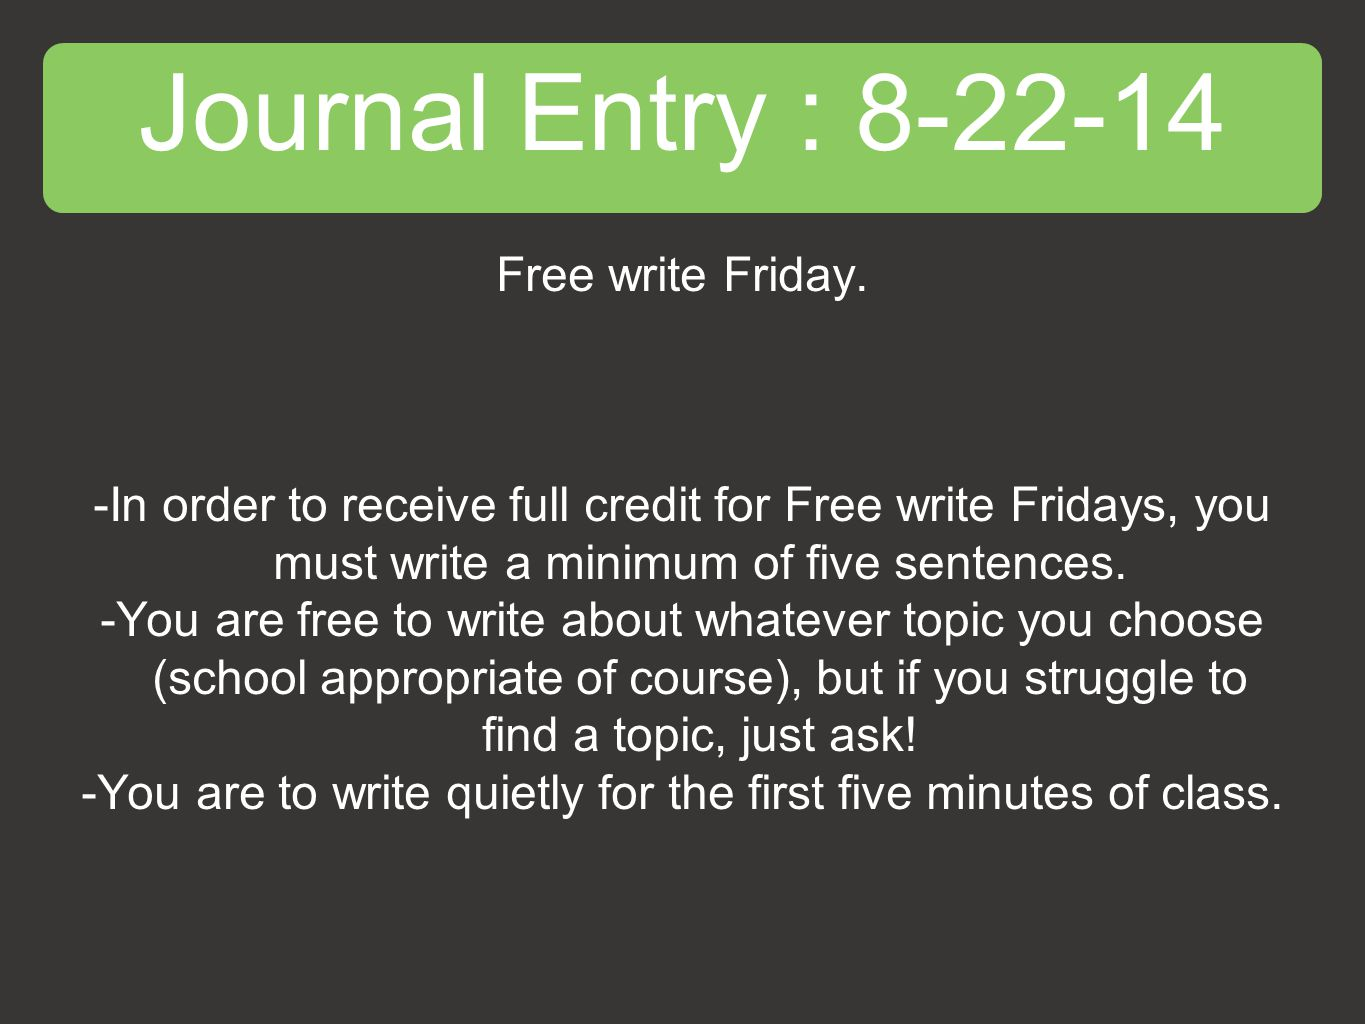 Journal Entry : 8-22-14 Free write Friday.